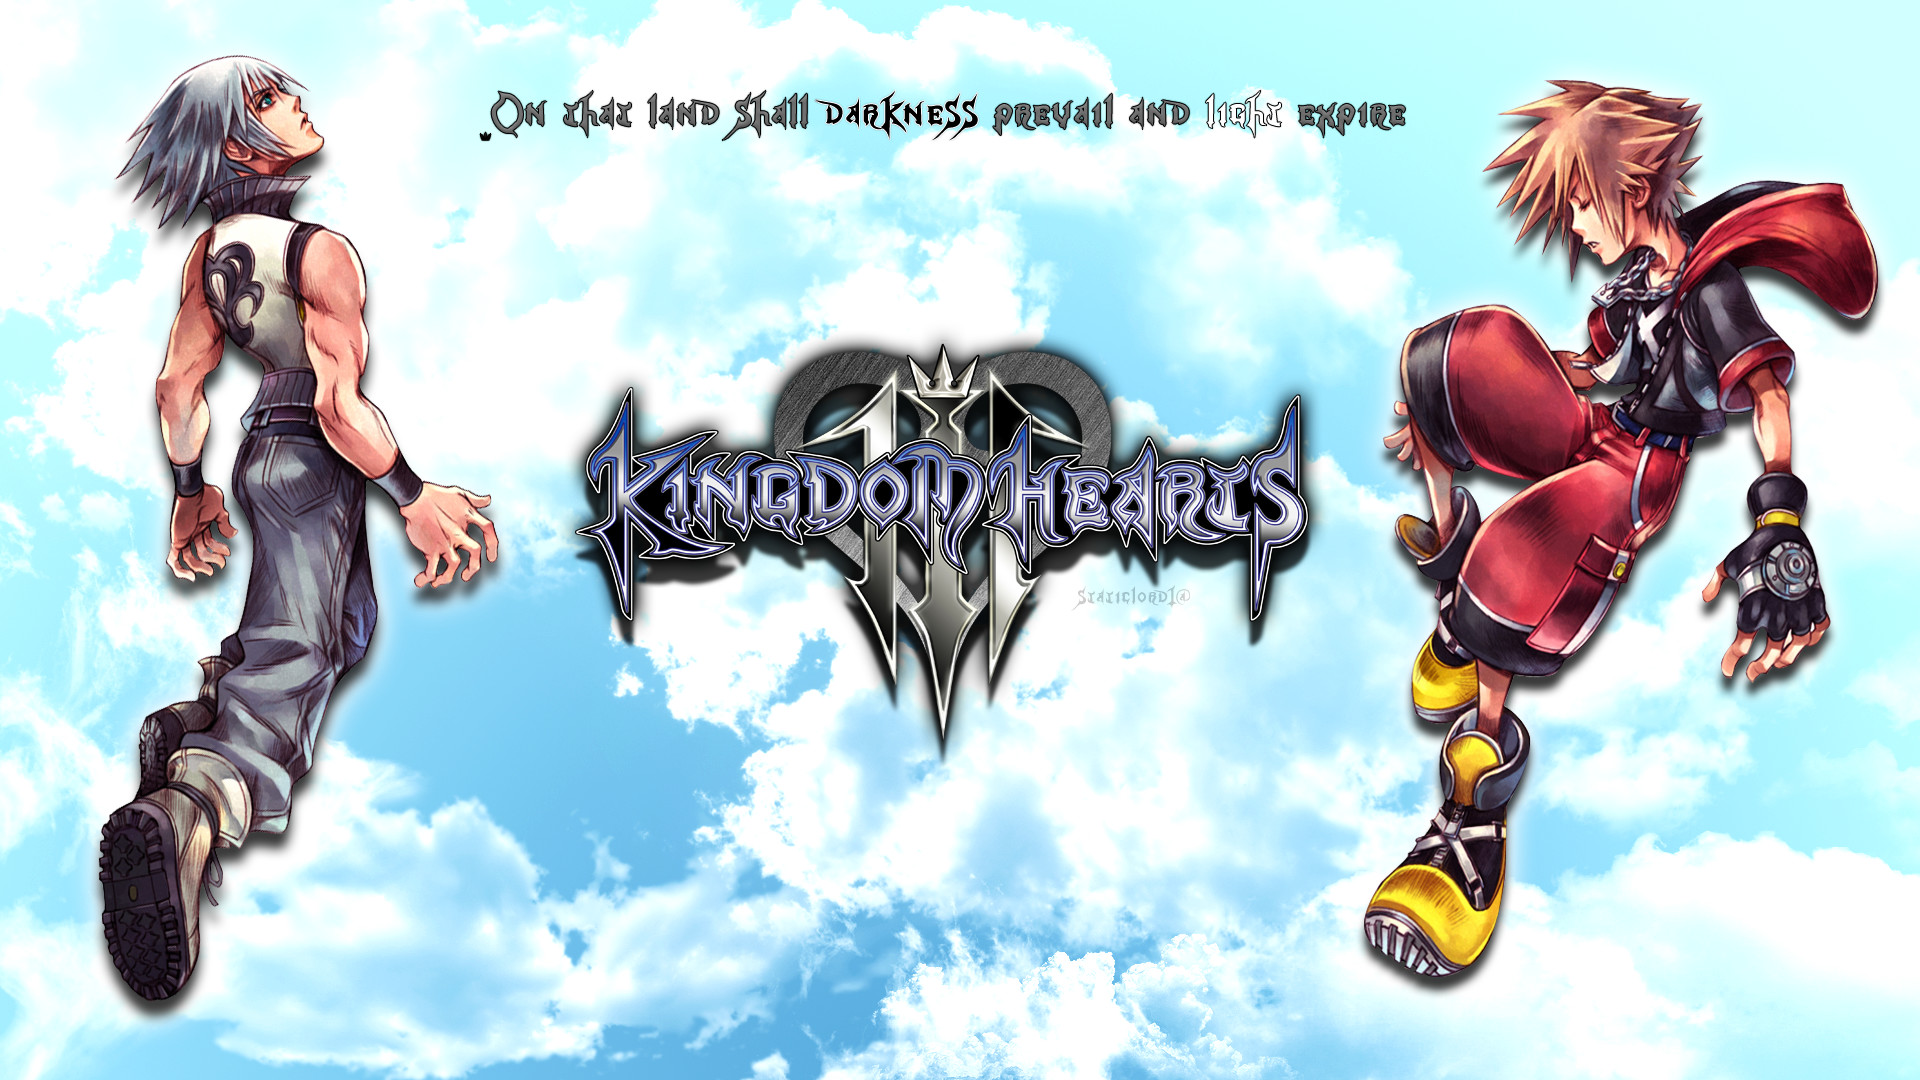 1920x1080 Kingdom hearts 3 Sora/Riku Wallpaper by static989 on DeviantArt